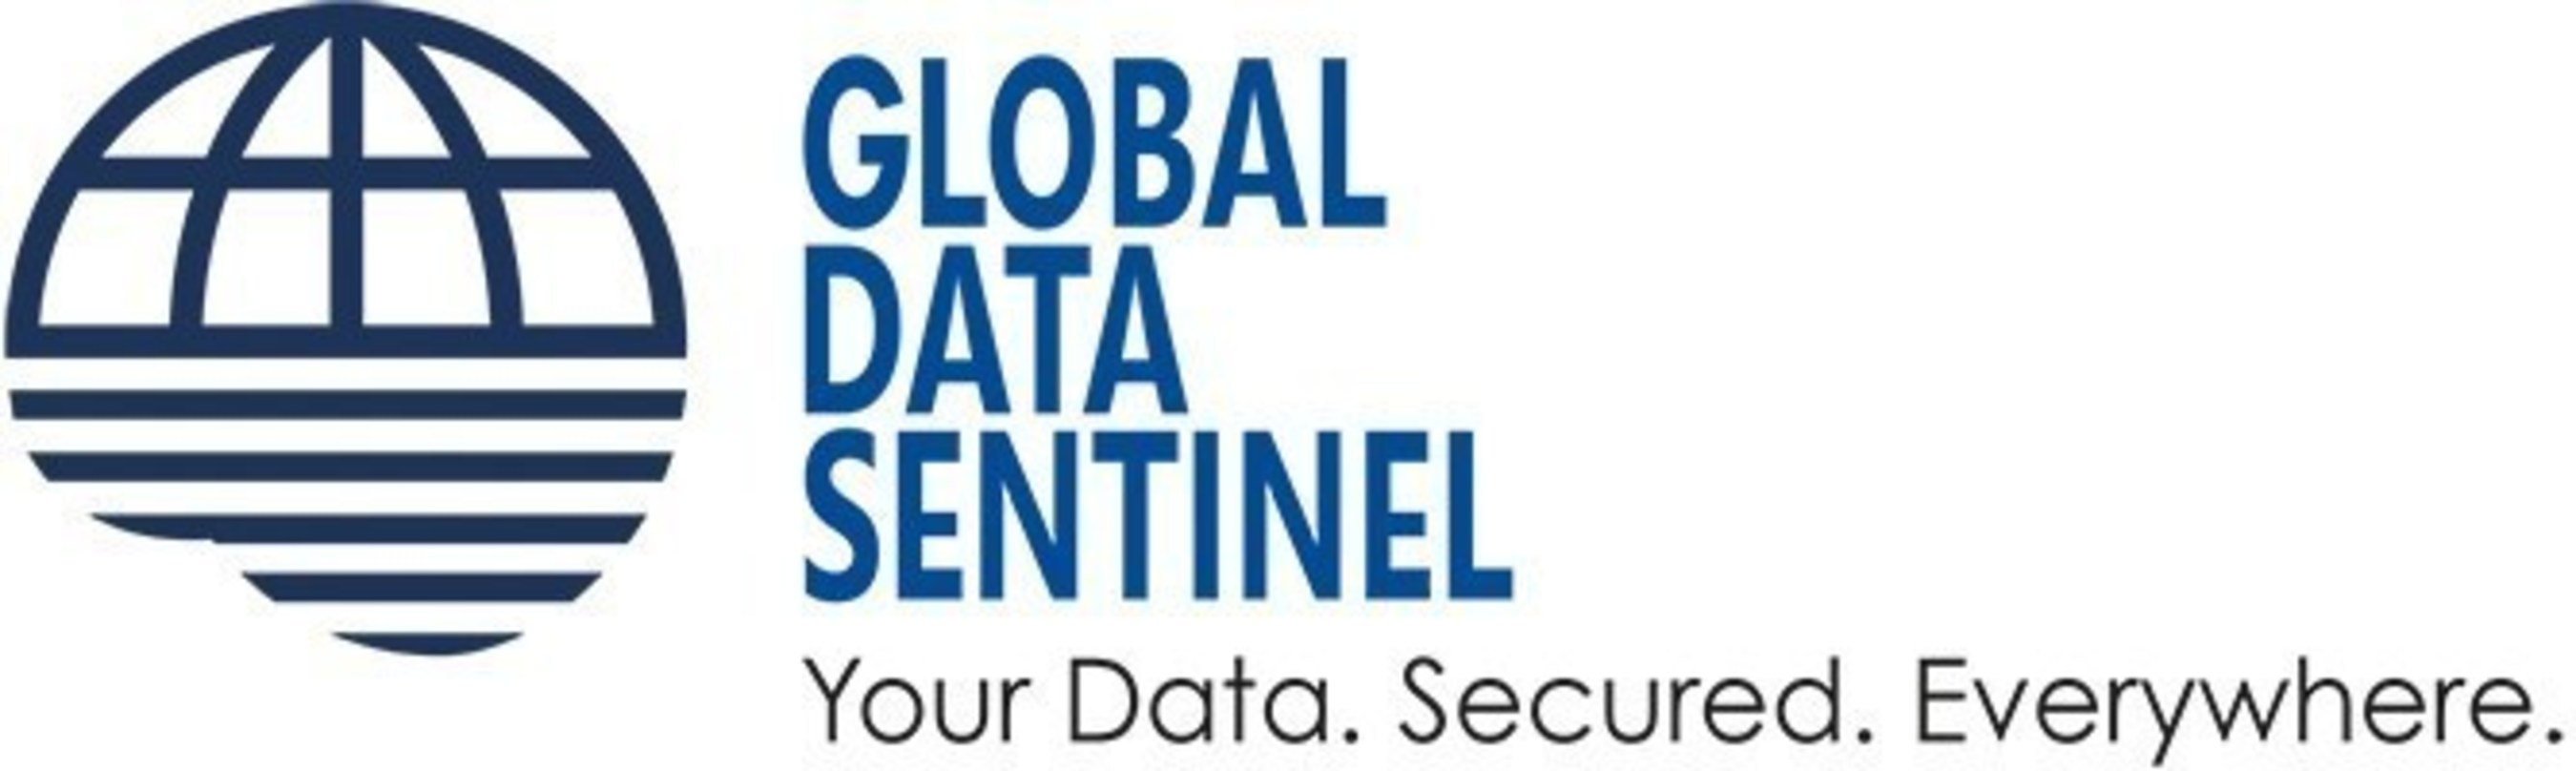 Amida Care Selects Global Data Sentinel for Next-Generation Security of Client Information and Other Data Assets